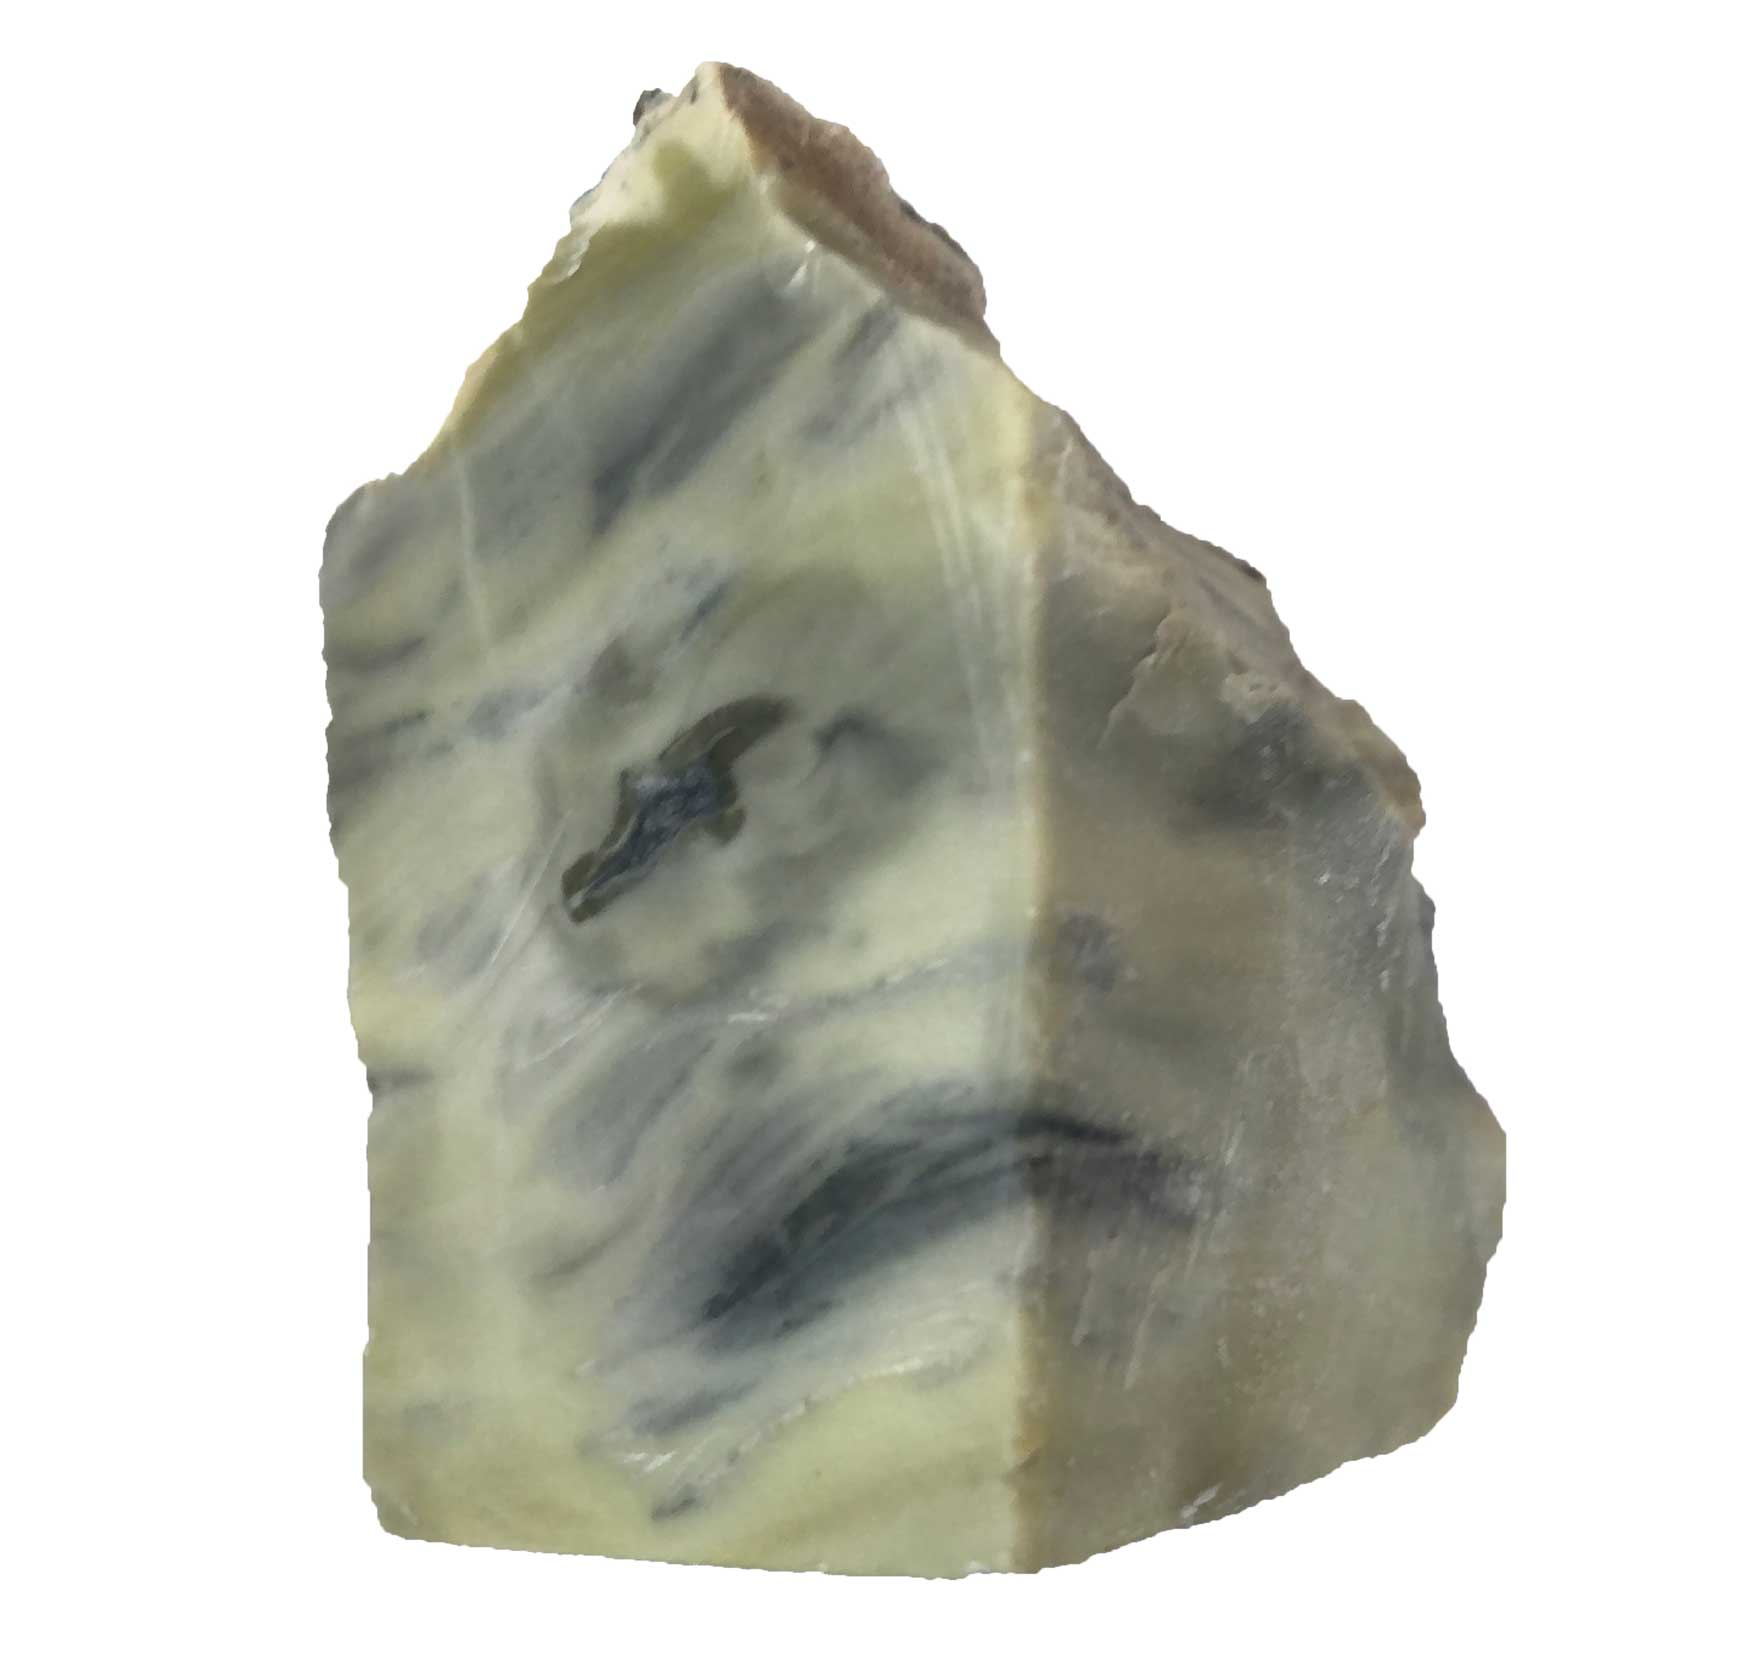 Polished Butterstone From South Africa 2.5 Billion Years Old